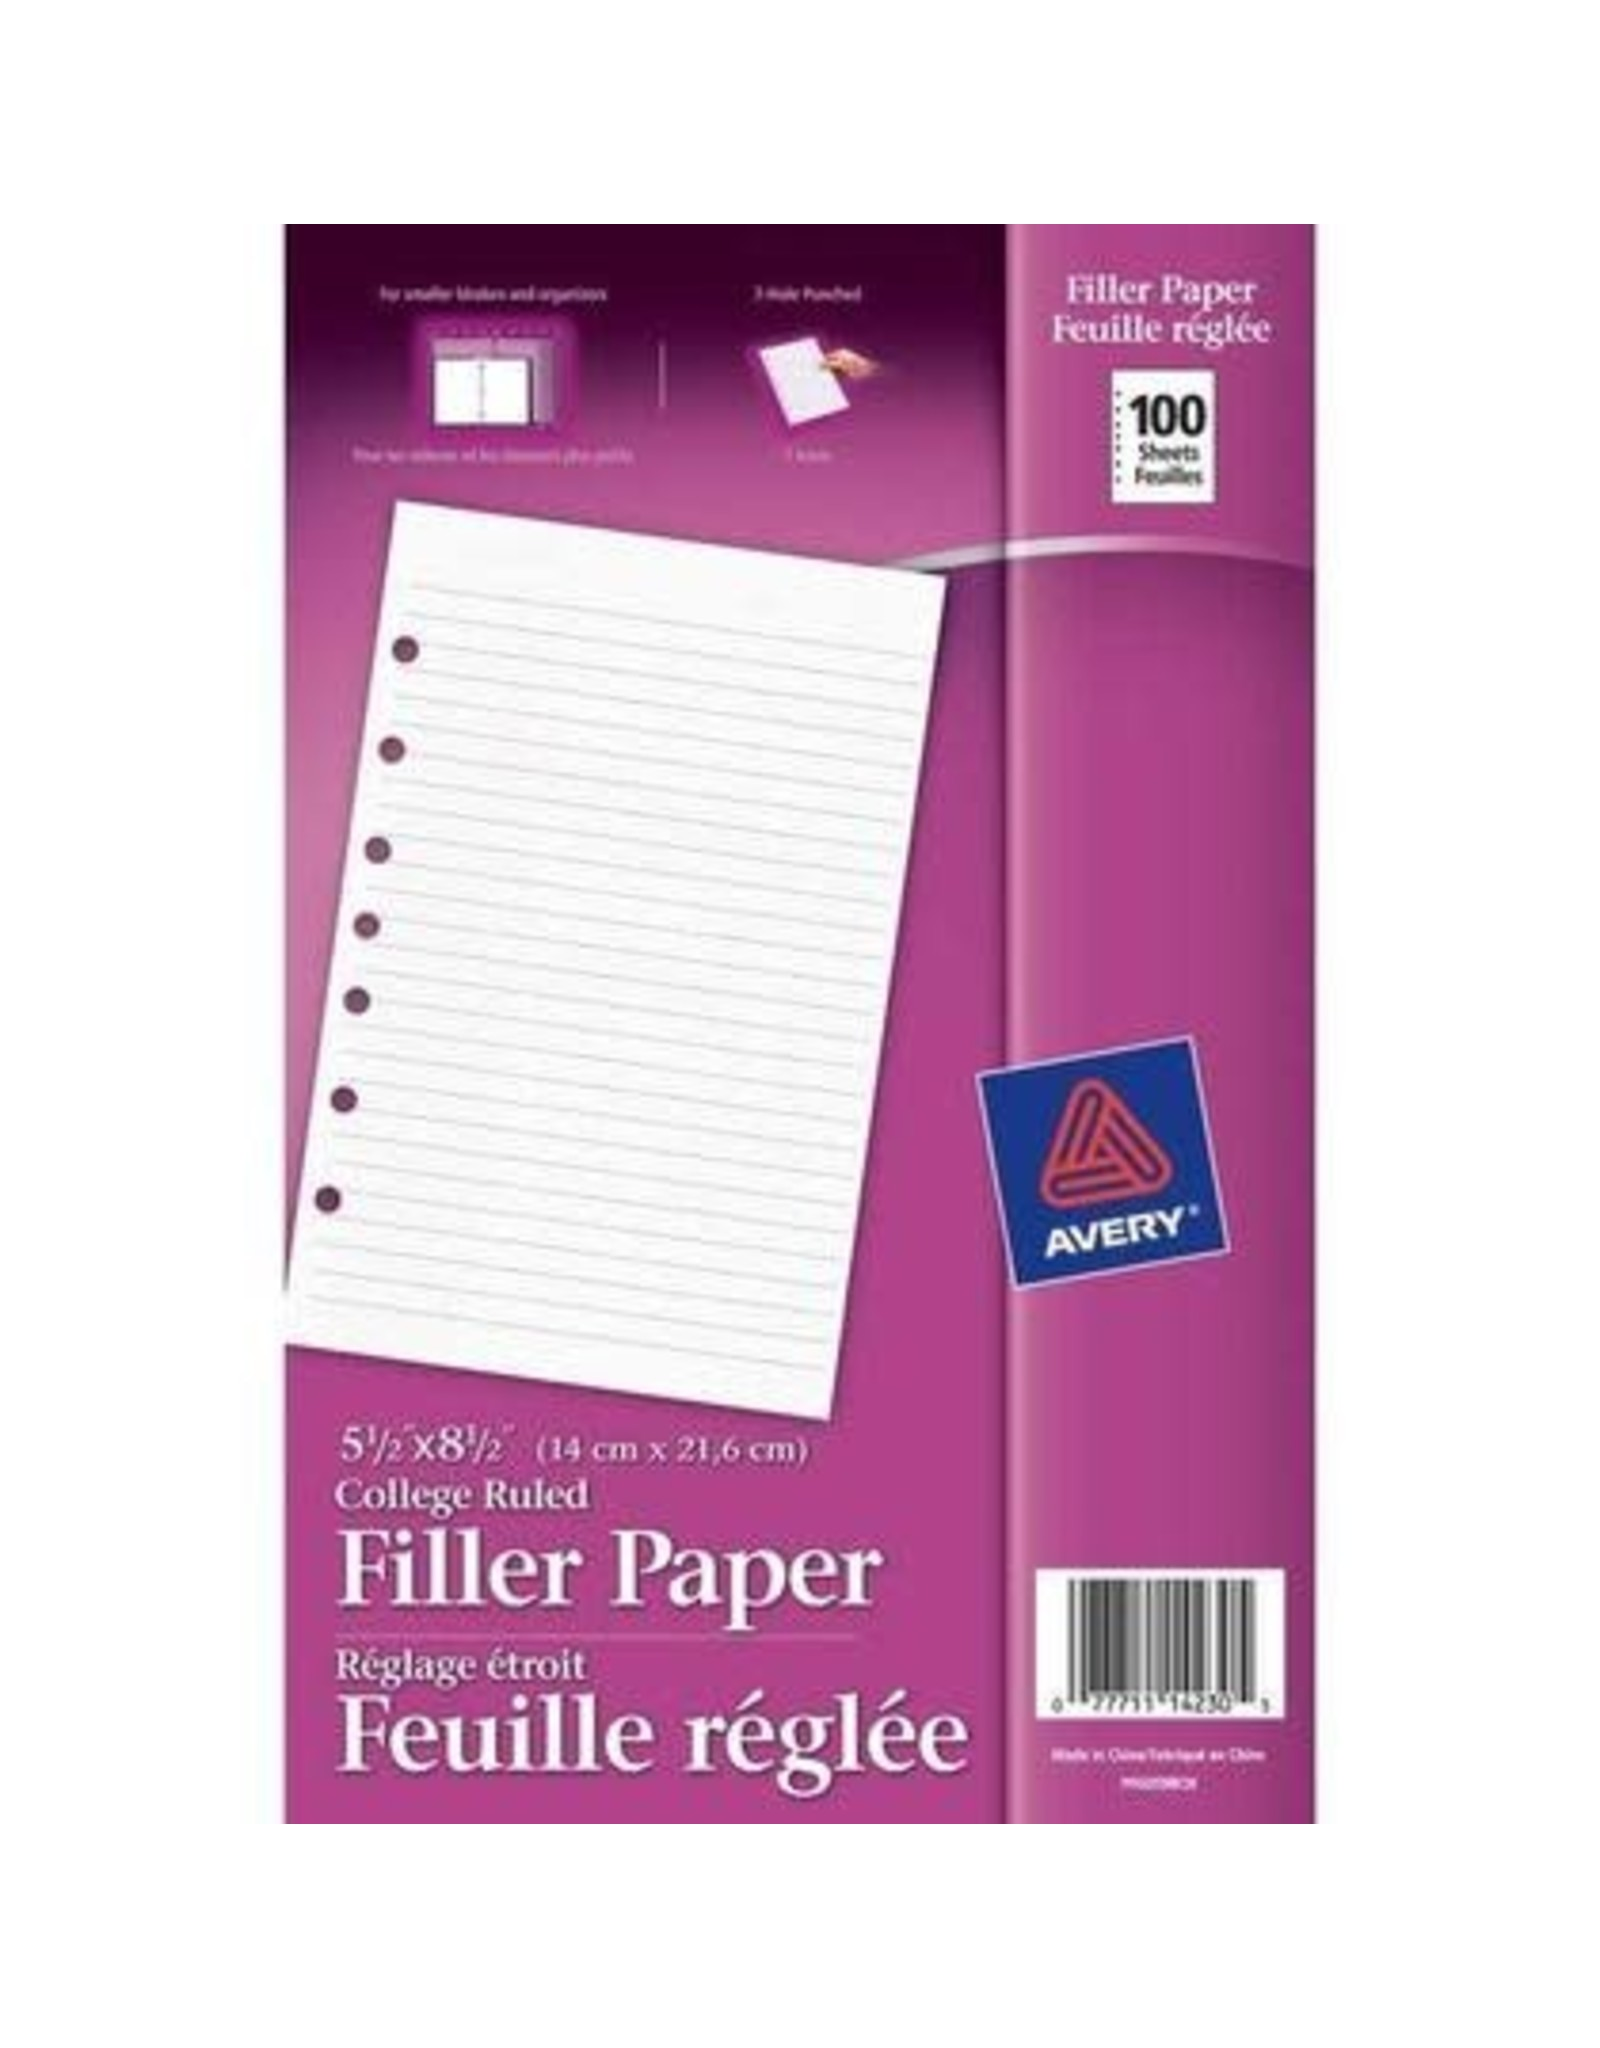 Avery BINDER PAPER- 5-1/2X8-1/2 LINED 7-HOLE 100/PACK